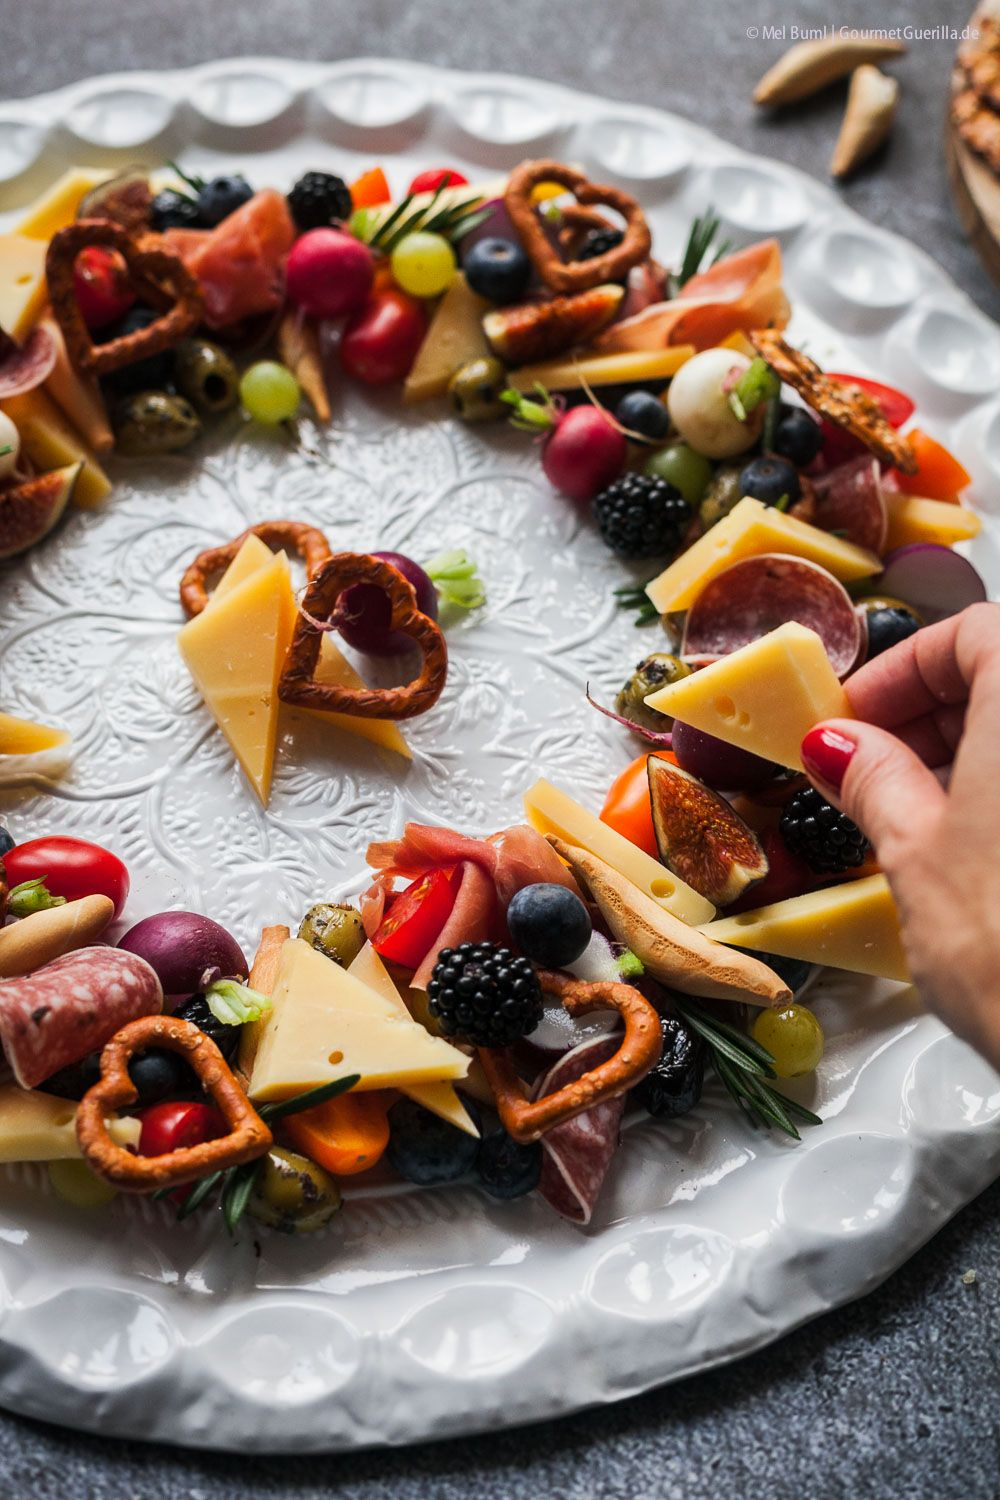 Photo of Colorful antipasti cheese wreath. My quick and festive recipe for EAT SMARTER and KALTBACH Gold. – Gourmet guerrilla